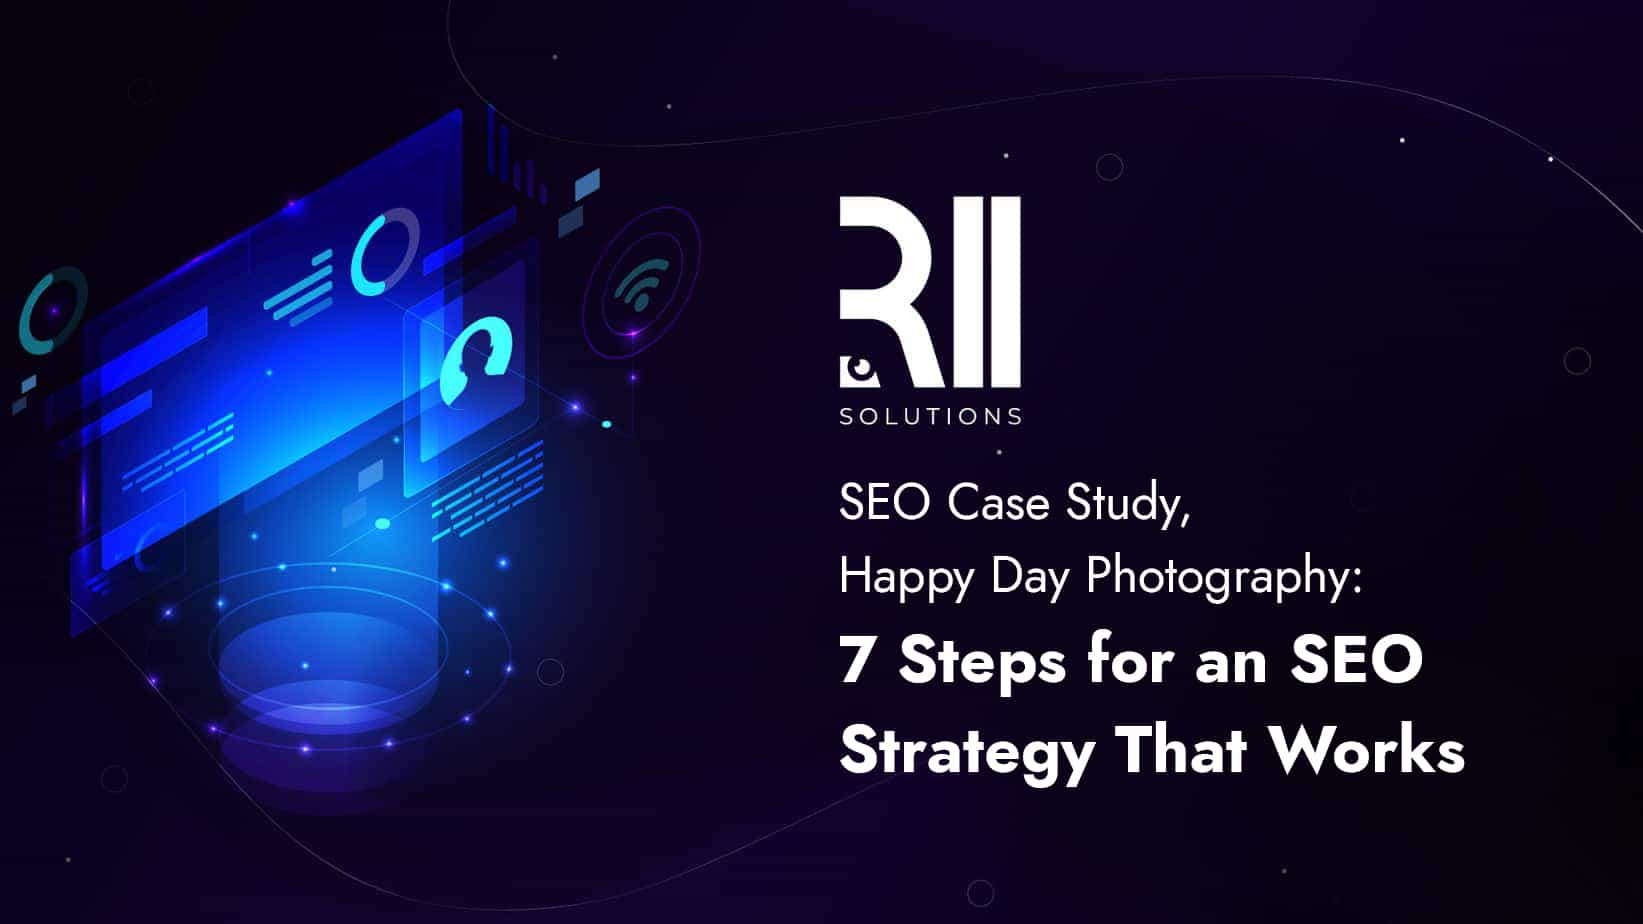 EO Case Study, Happy Day Photography: 7 Steps for an SEO Strategy That Works